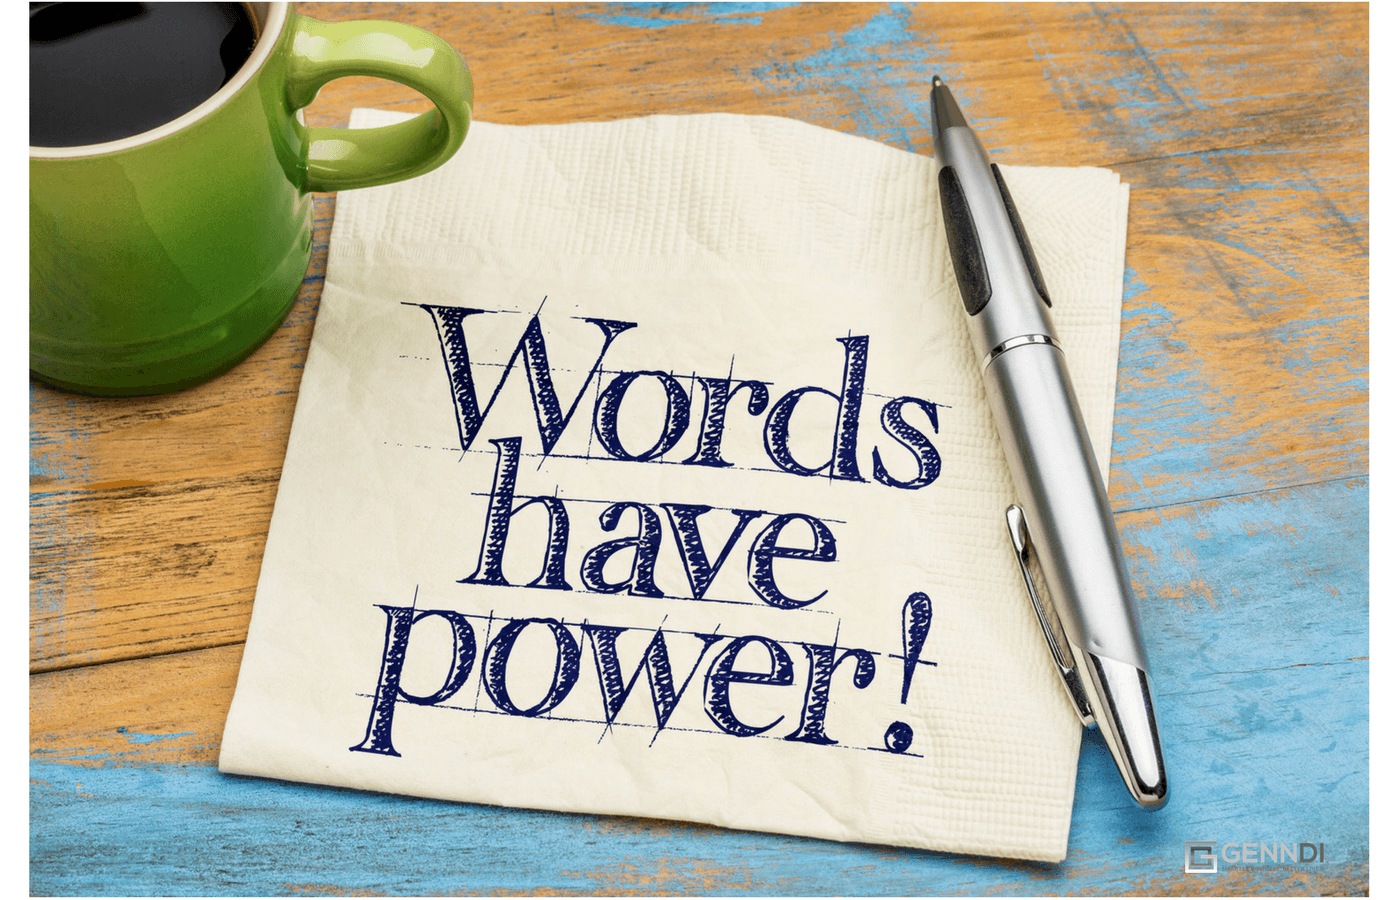 Words are a one of the most powerful tools a marketer has.